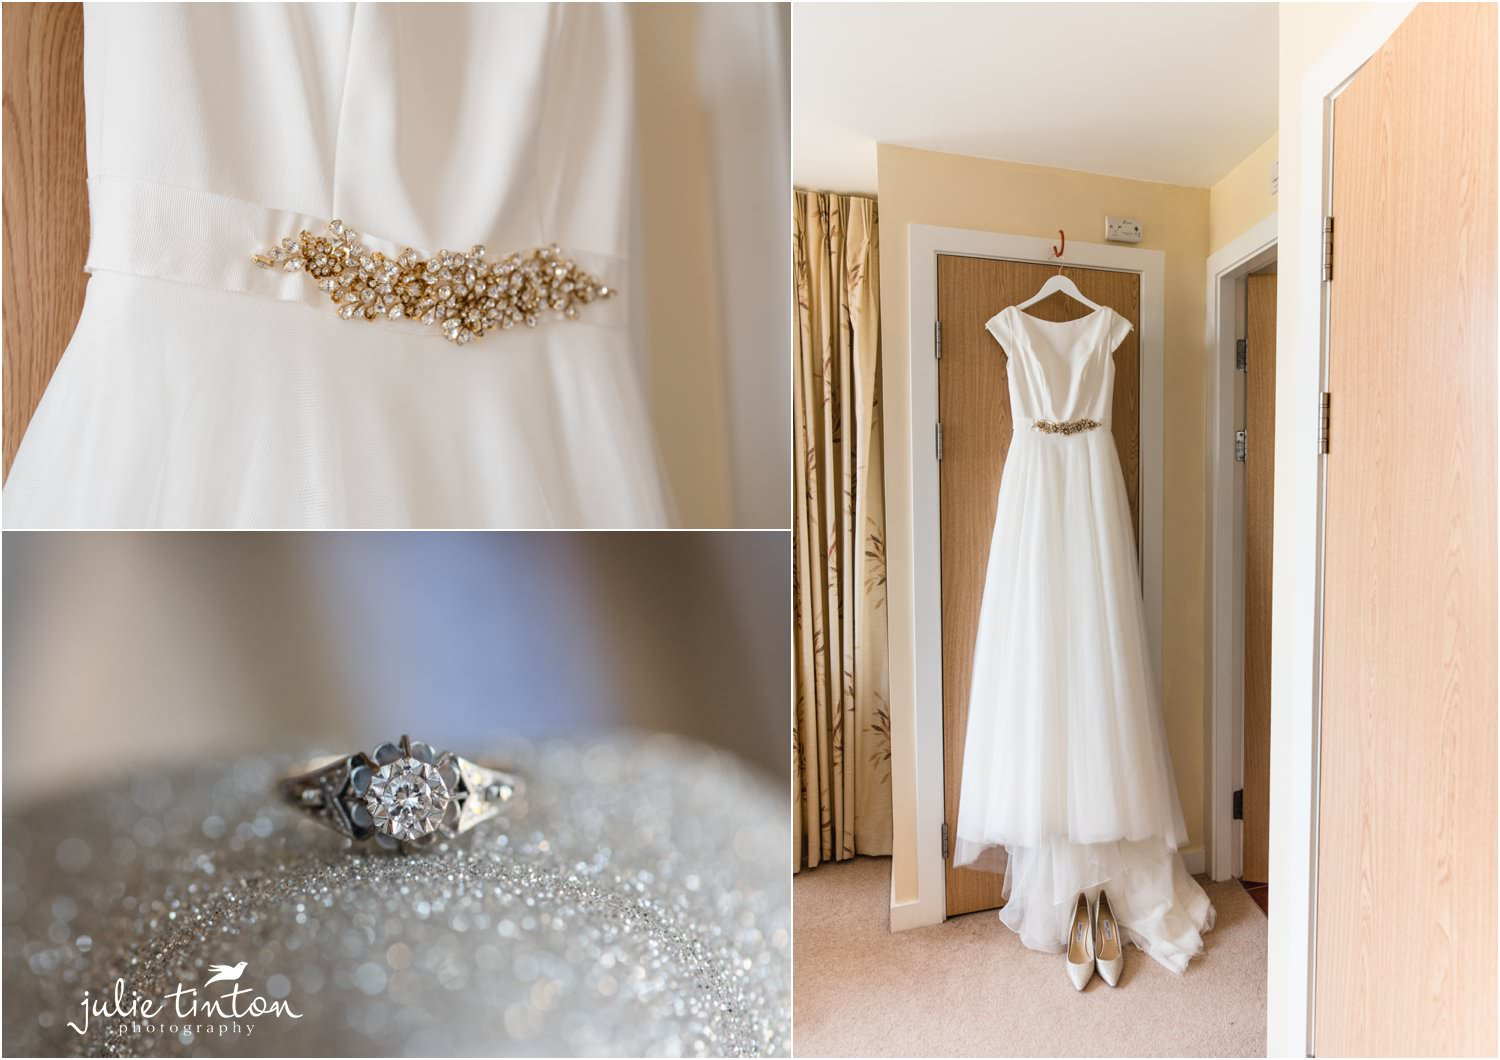 Brides wedding dress and vintage ring